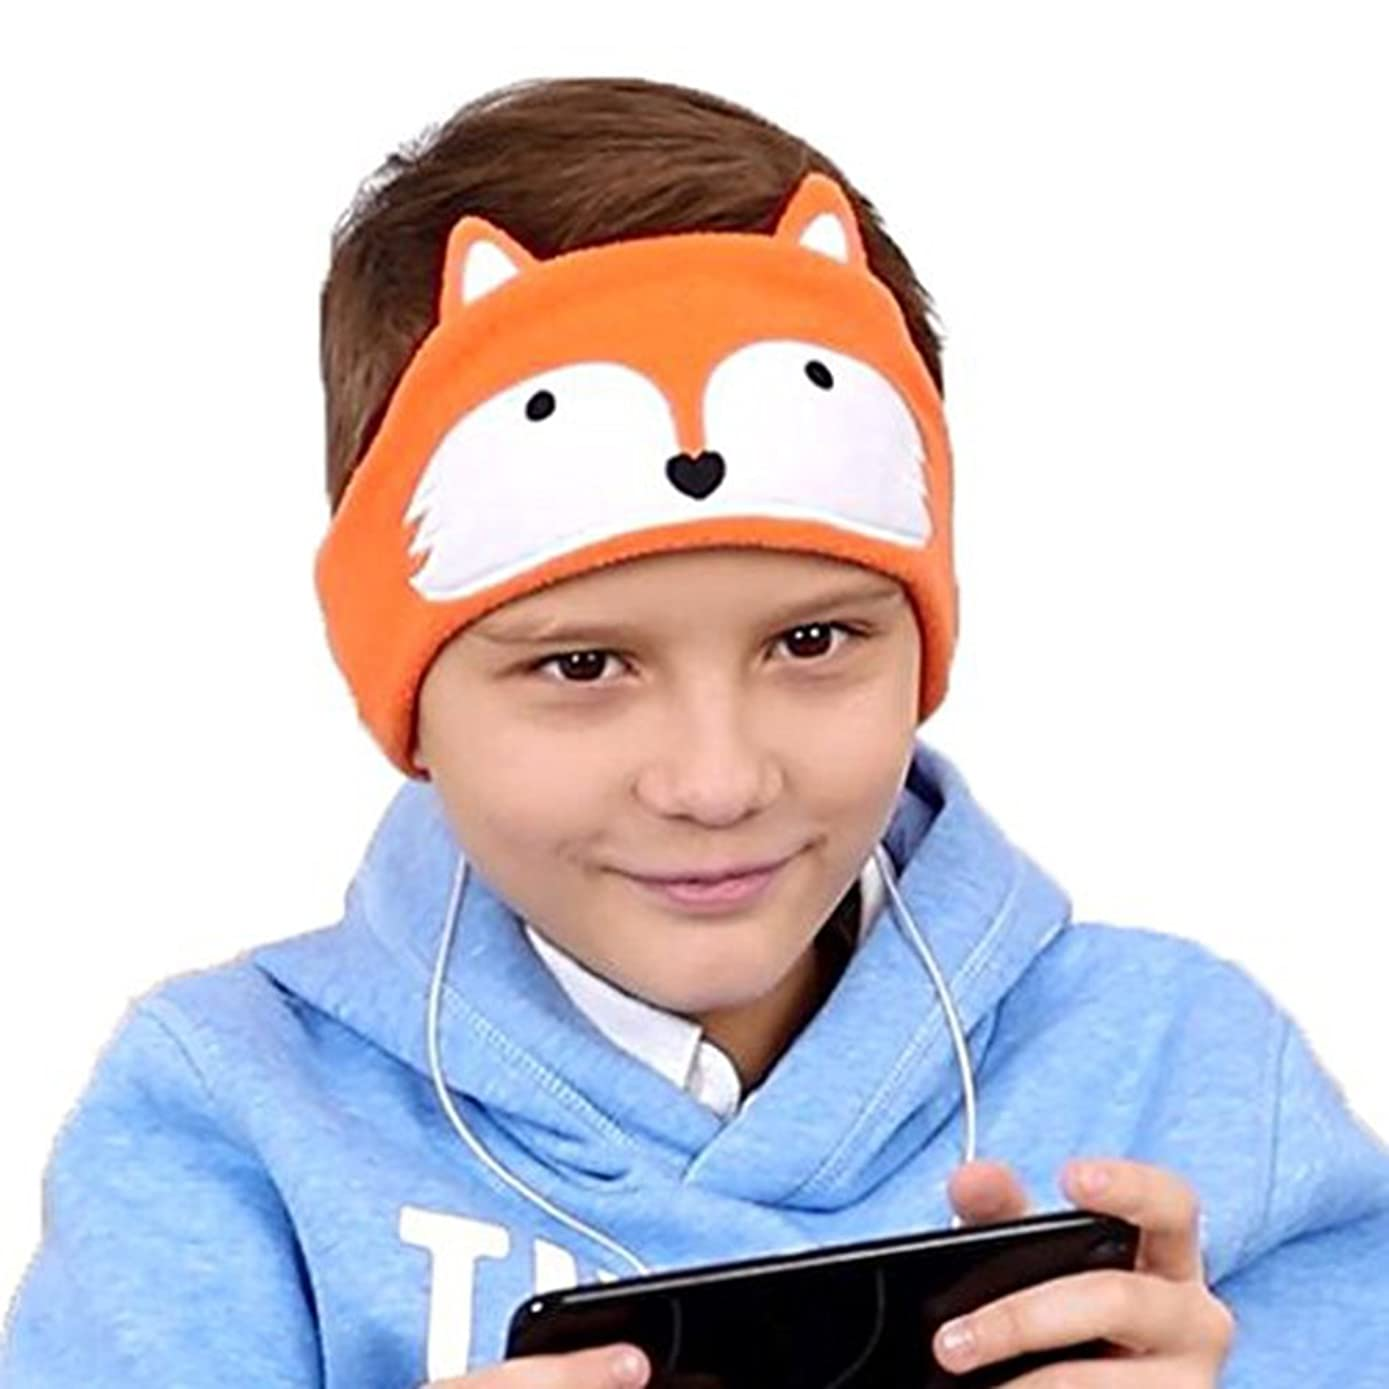 FIRIK Kids Headphones Volume Limited with Easy Adjustable Toddler Costume Silky Headband Headphones for Children, Perfect for Air Travel, Home and Christmas Birthday Gift - Fox